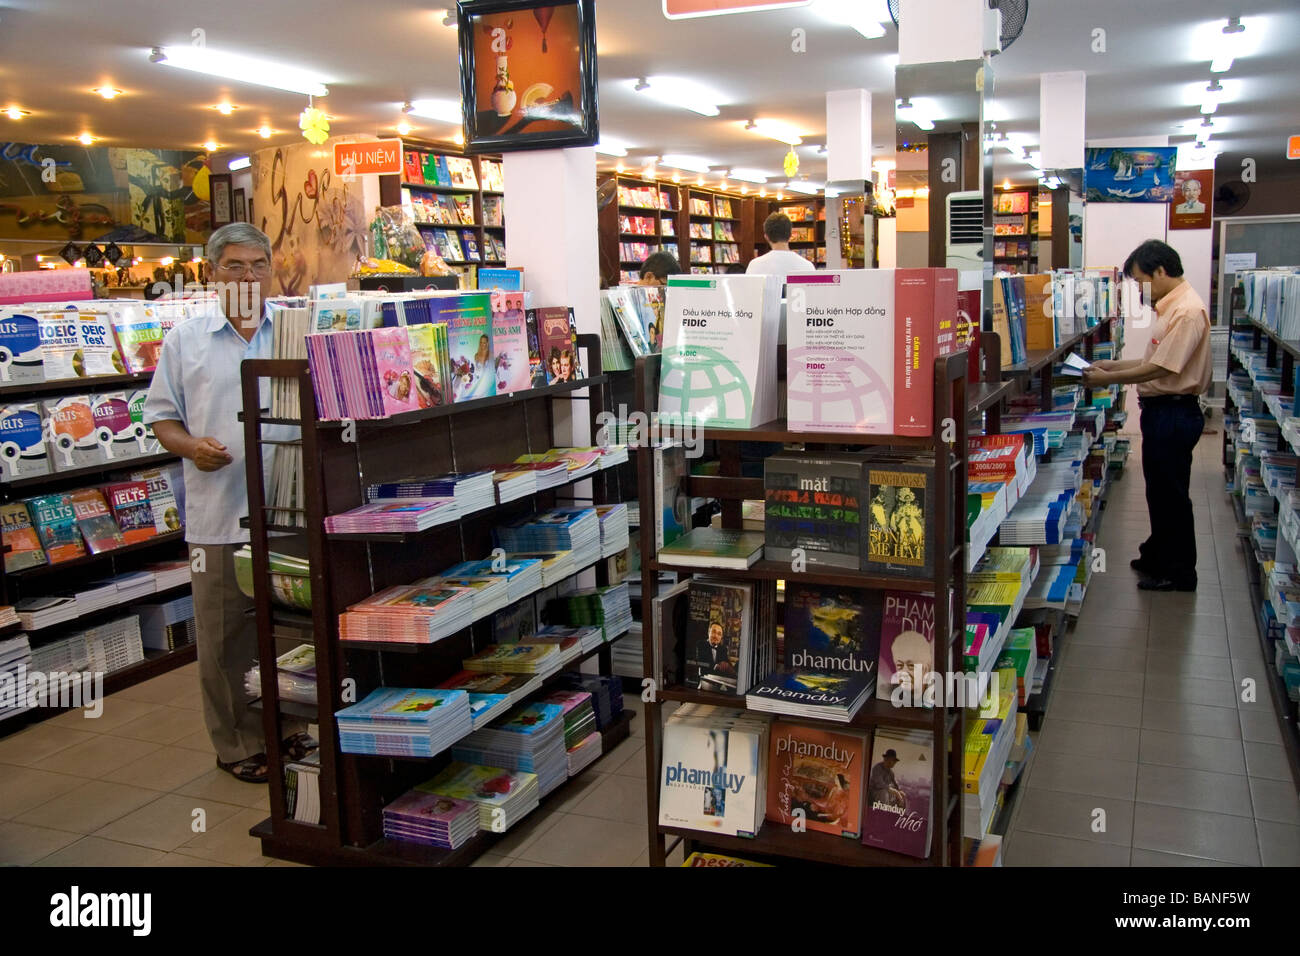 Vietnamese people shopping in a bookstore in Ho Chi Minh City Vietnam - Stock Image